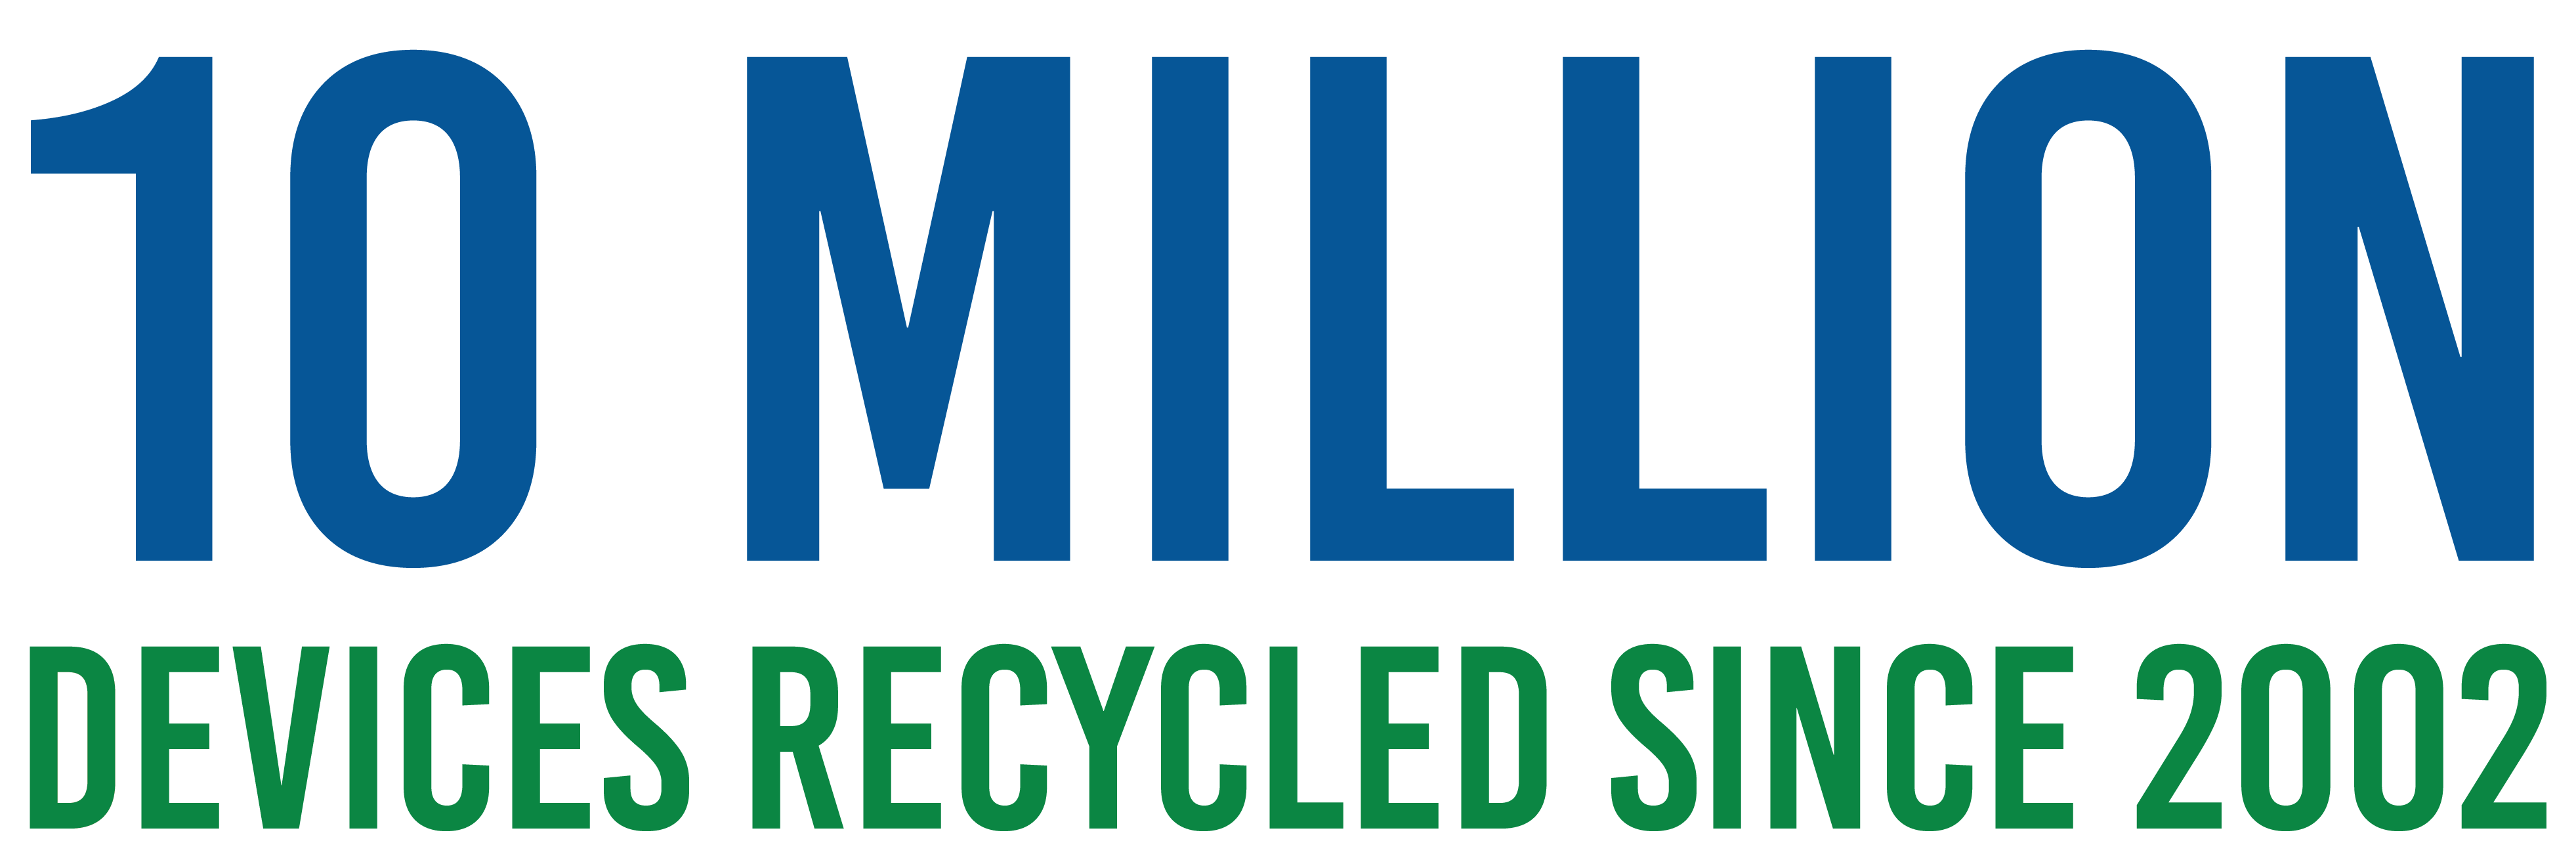 SmartphoneRecycling.com has Safely Recycled Over 10 Million Devices Since 2002